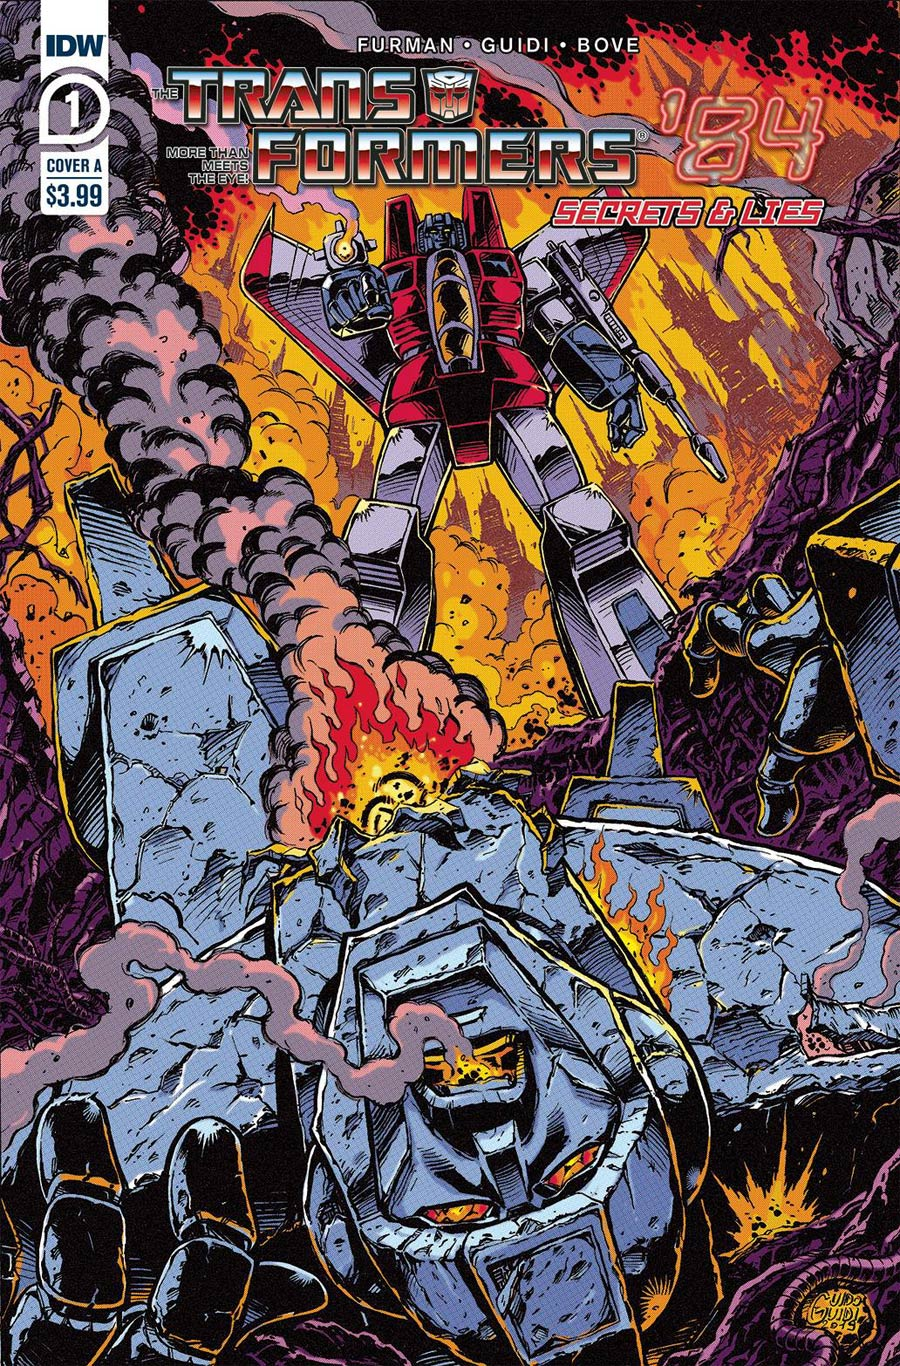 Transformers 84 Secrets And Lies #1 Cover A Regular Guido Guidi Cover